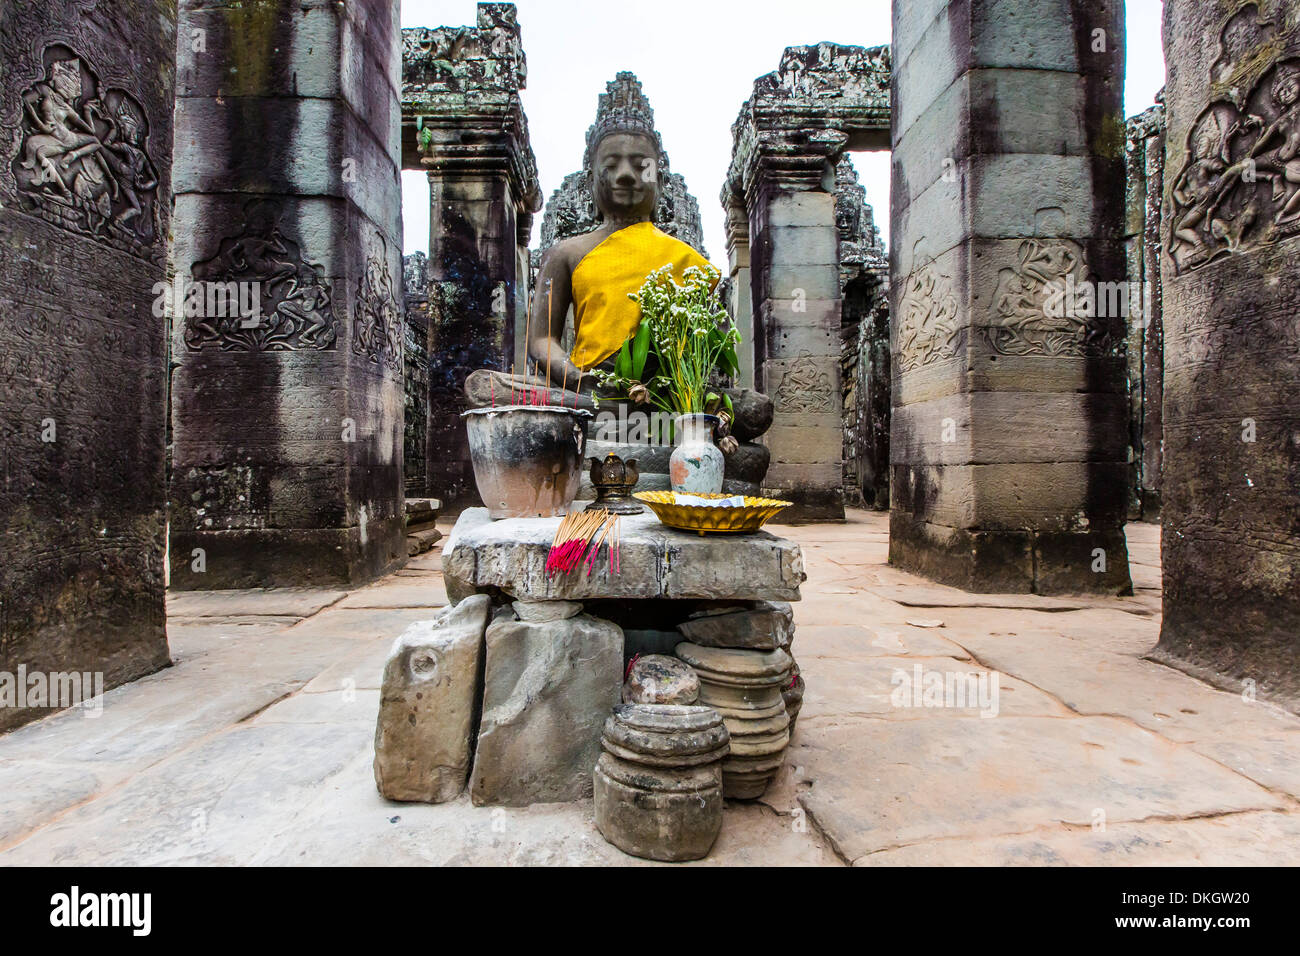 Shrine in Bayon Temple in Angkor Thom, Angkor, UNESCO World Heritage Site, Siem Reap Province, Cambodia, Southeast Asia - Stock Image